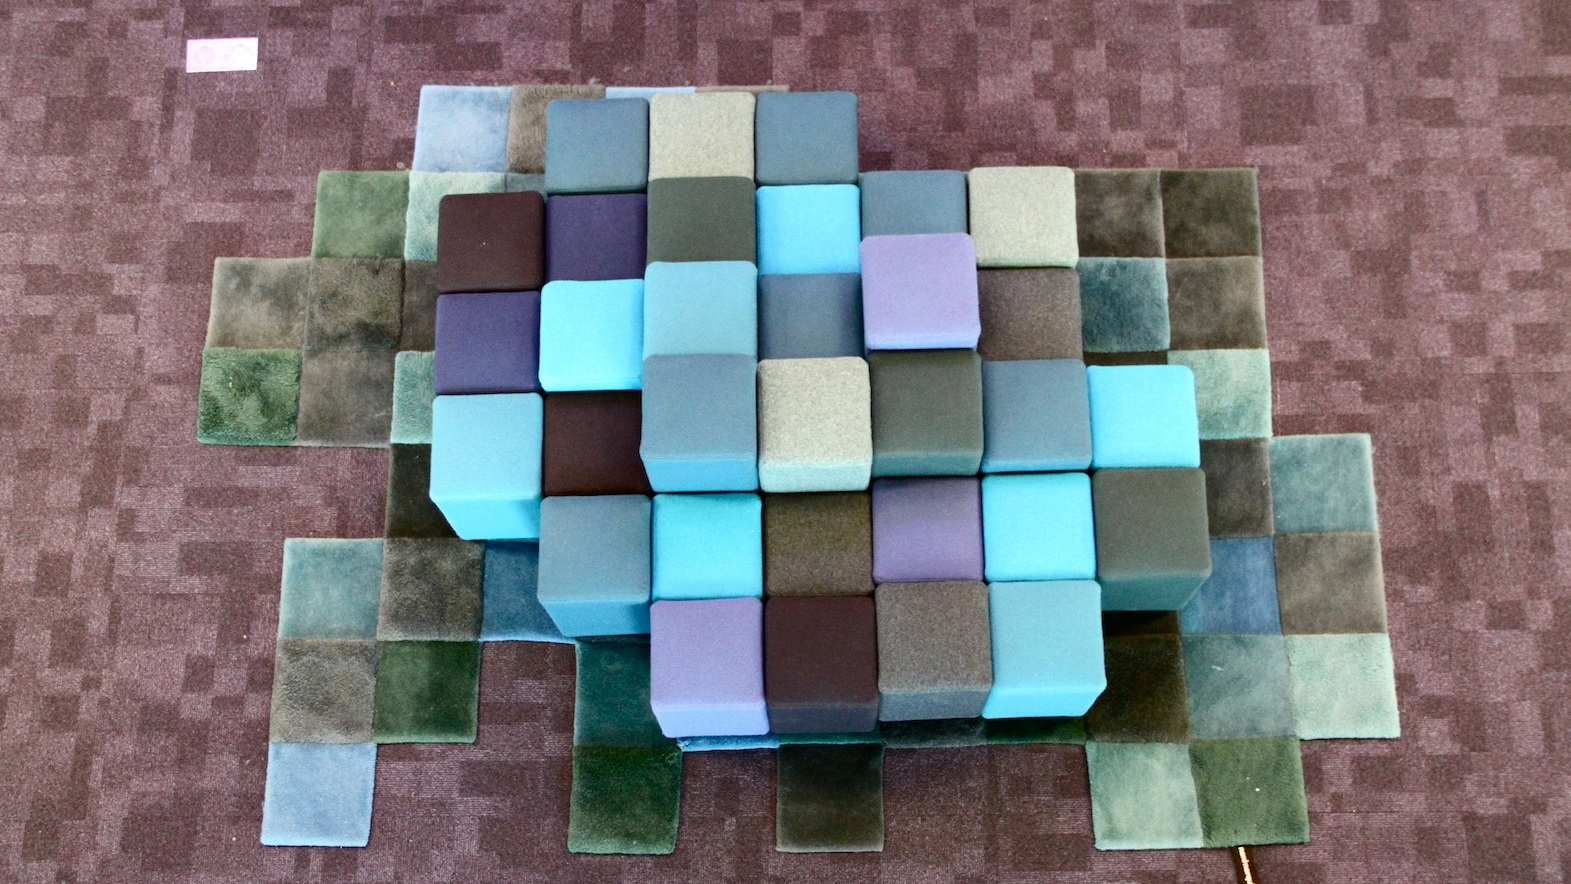 Custom made carpet and couch in pixels